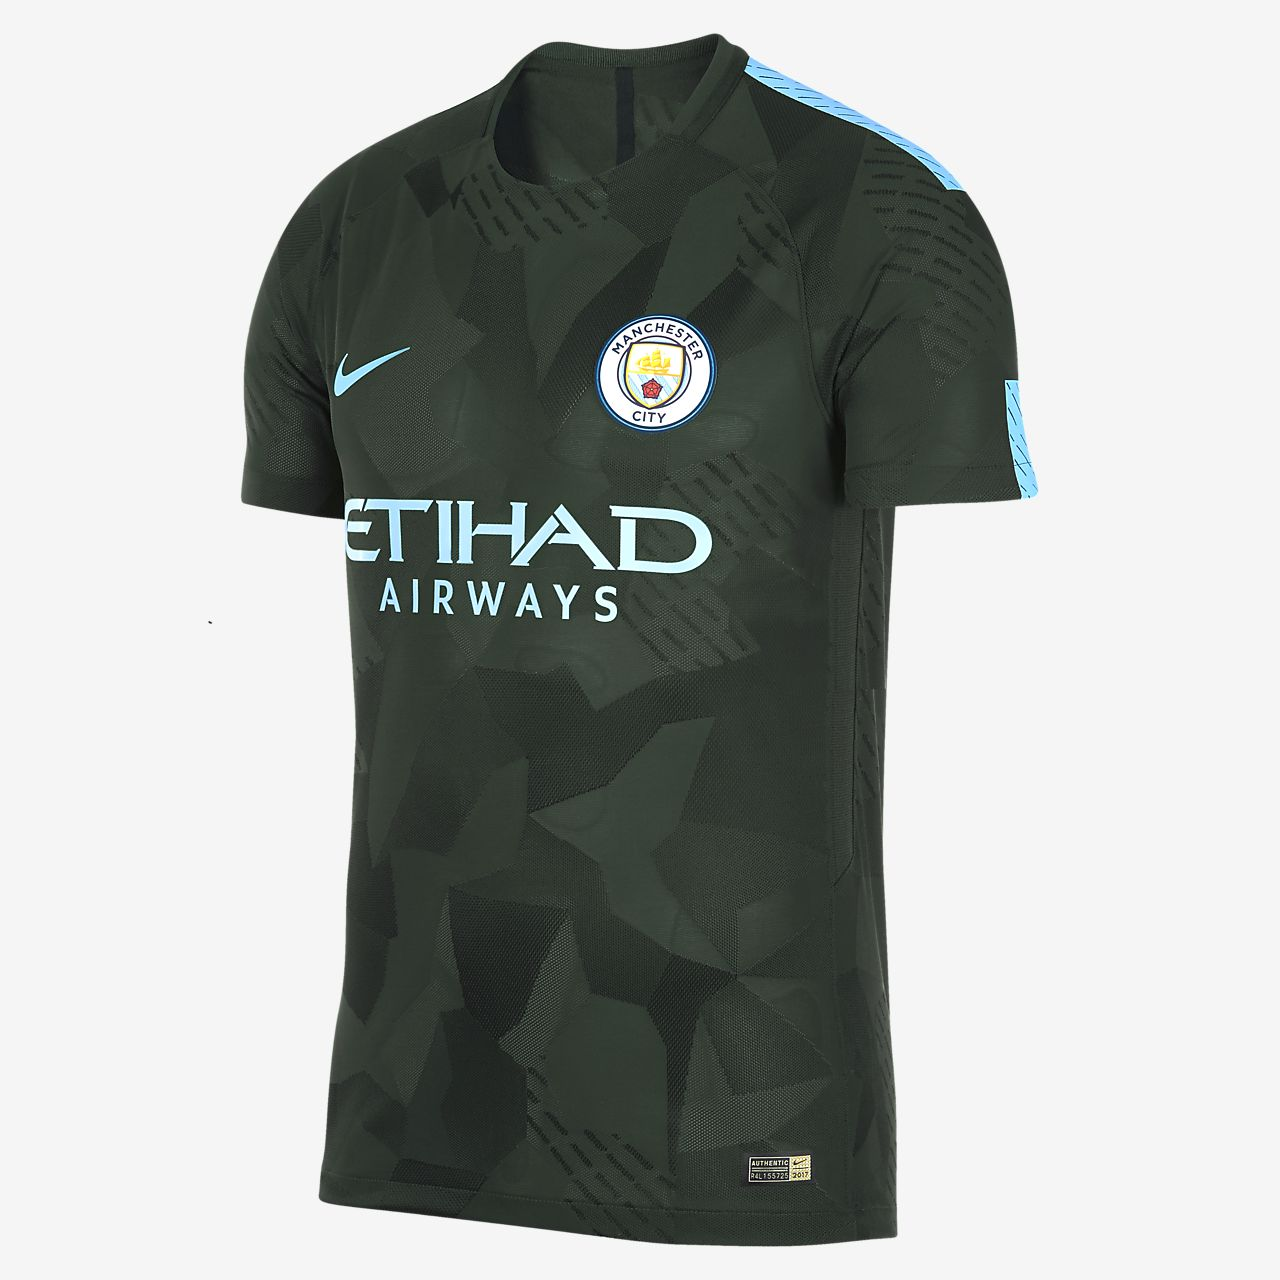 ... 2017/18 Manchester City FC Vapor Match Third Men's Football Shirt